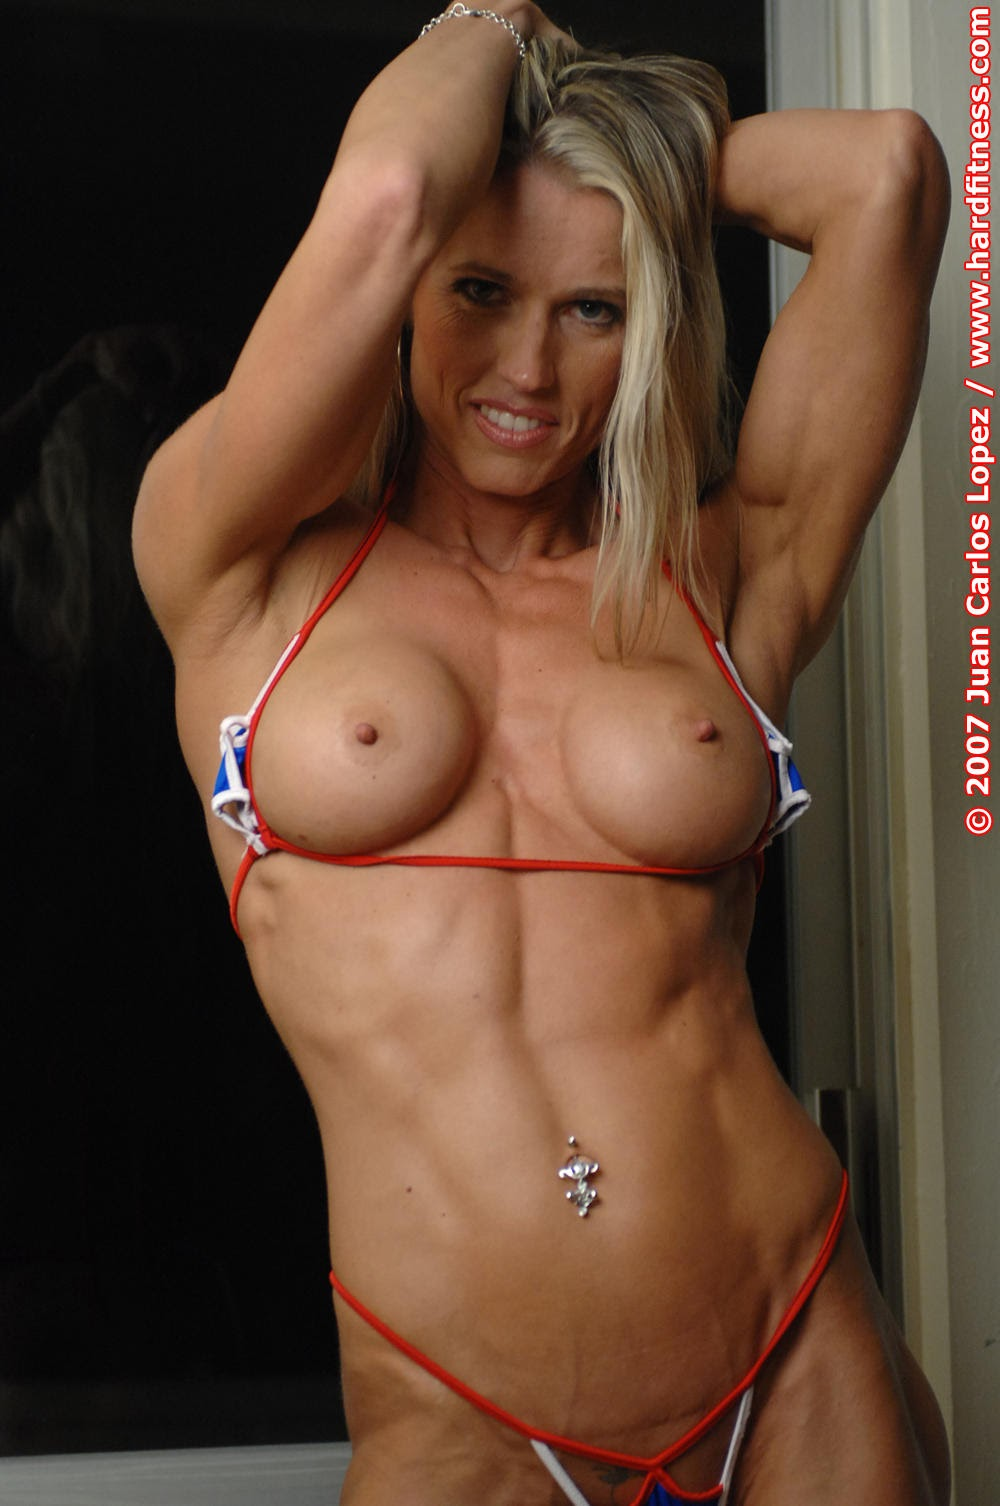 from Mathias nude women great abs